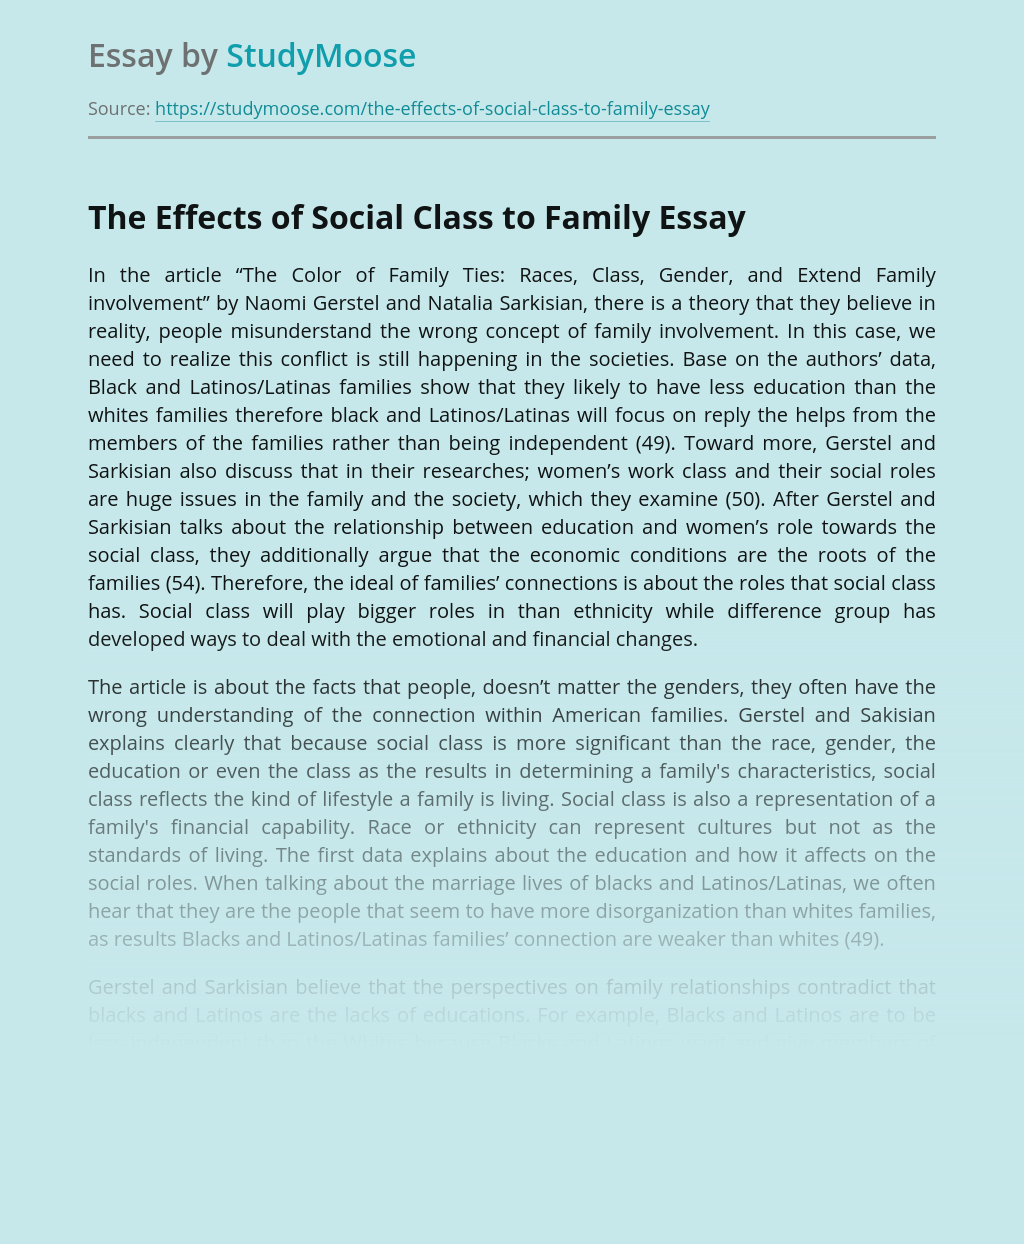 The Effects of Social Class to Family